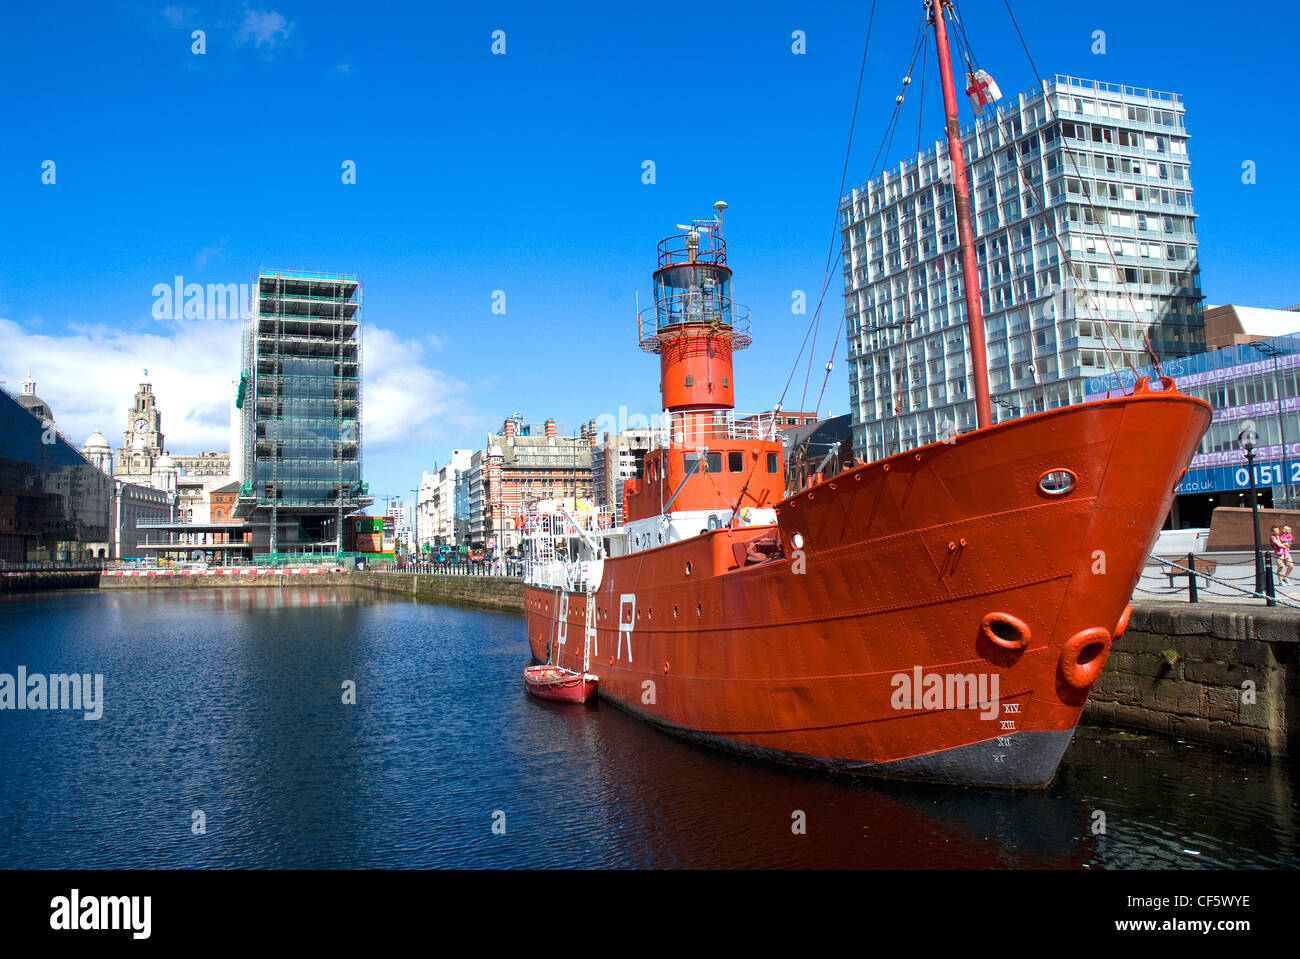 The former Mersey Bar Lightship 'Planet' in Canning Dock. - Stock Image